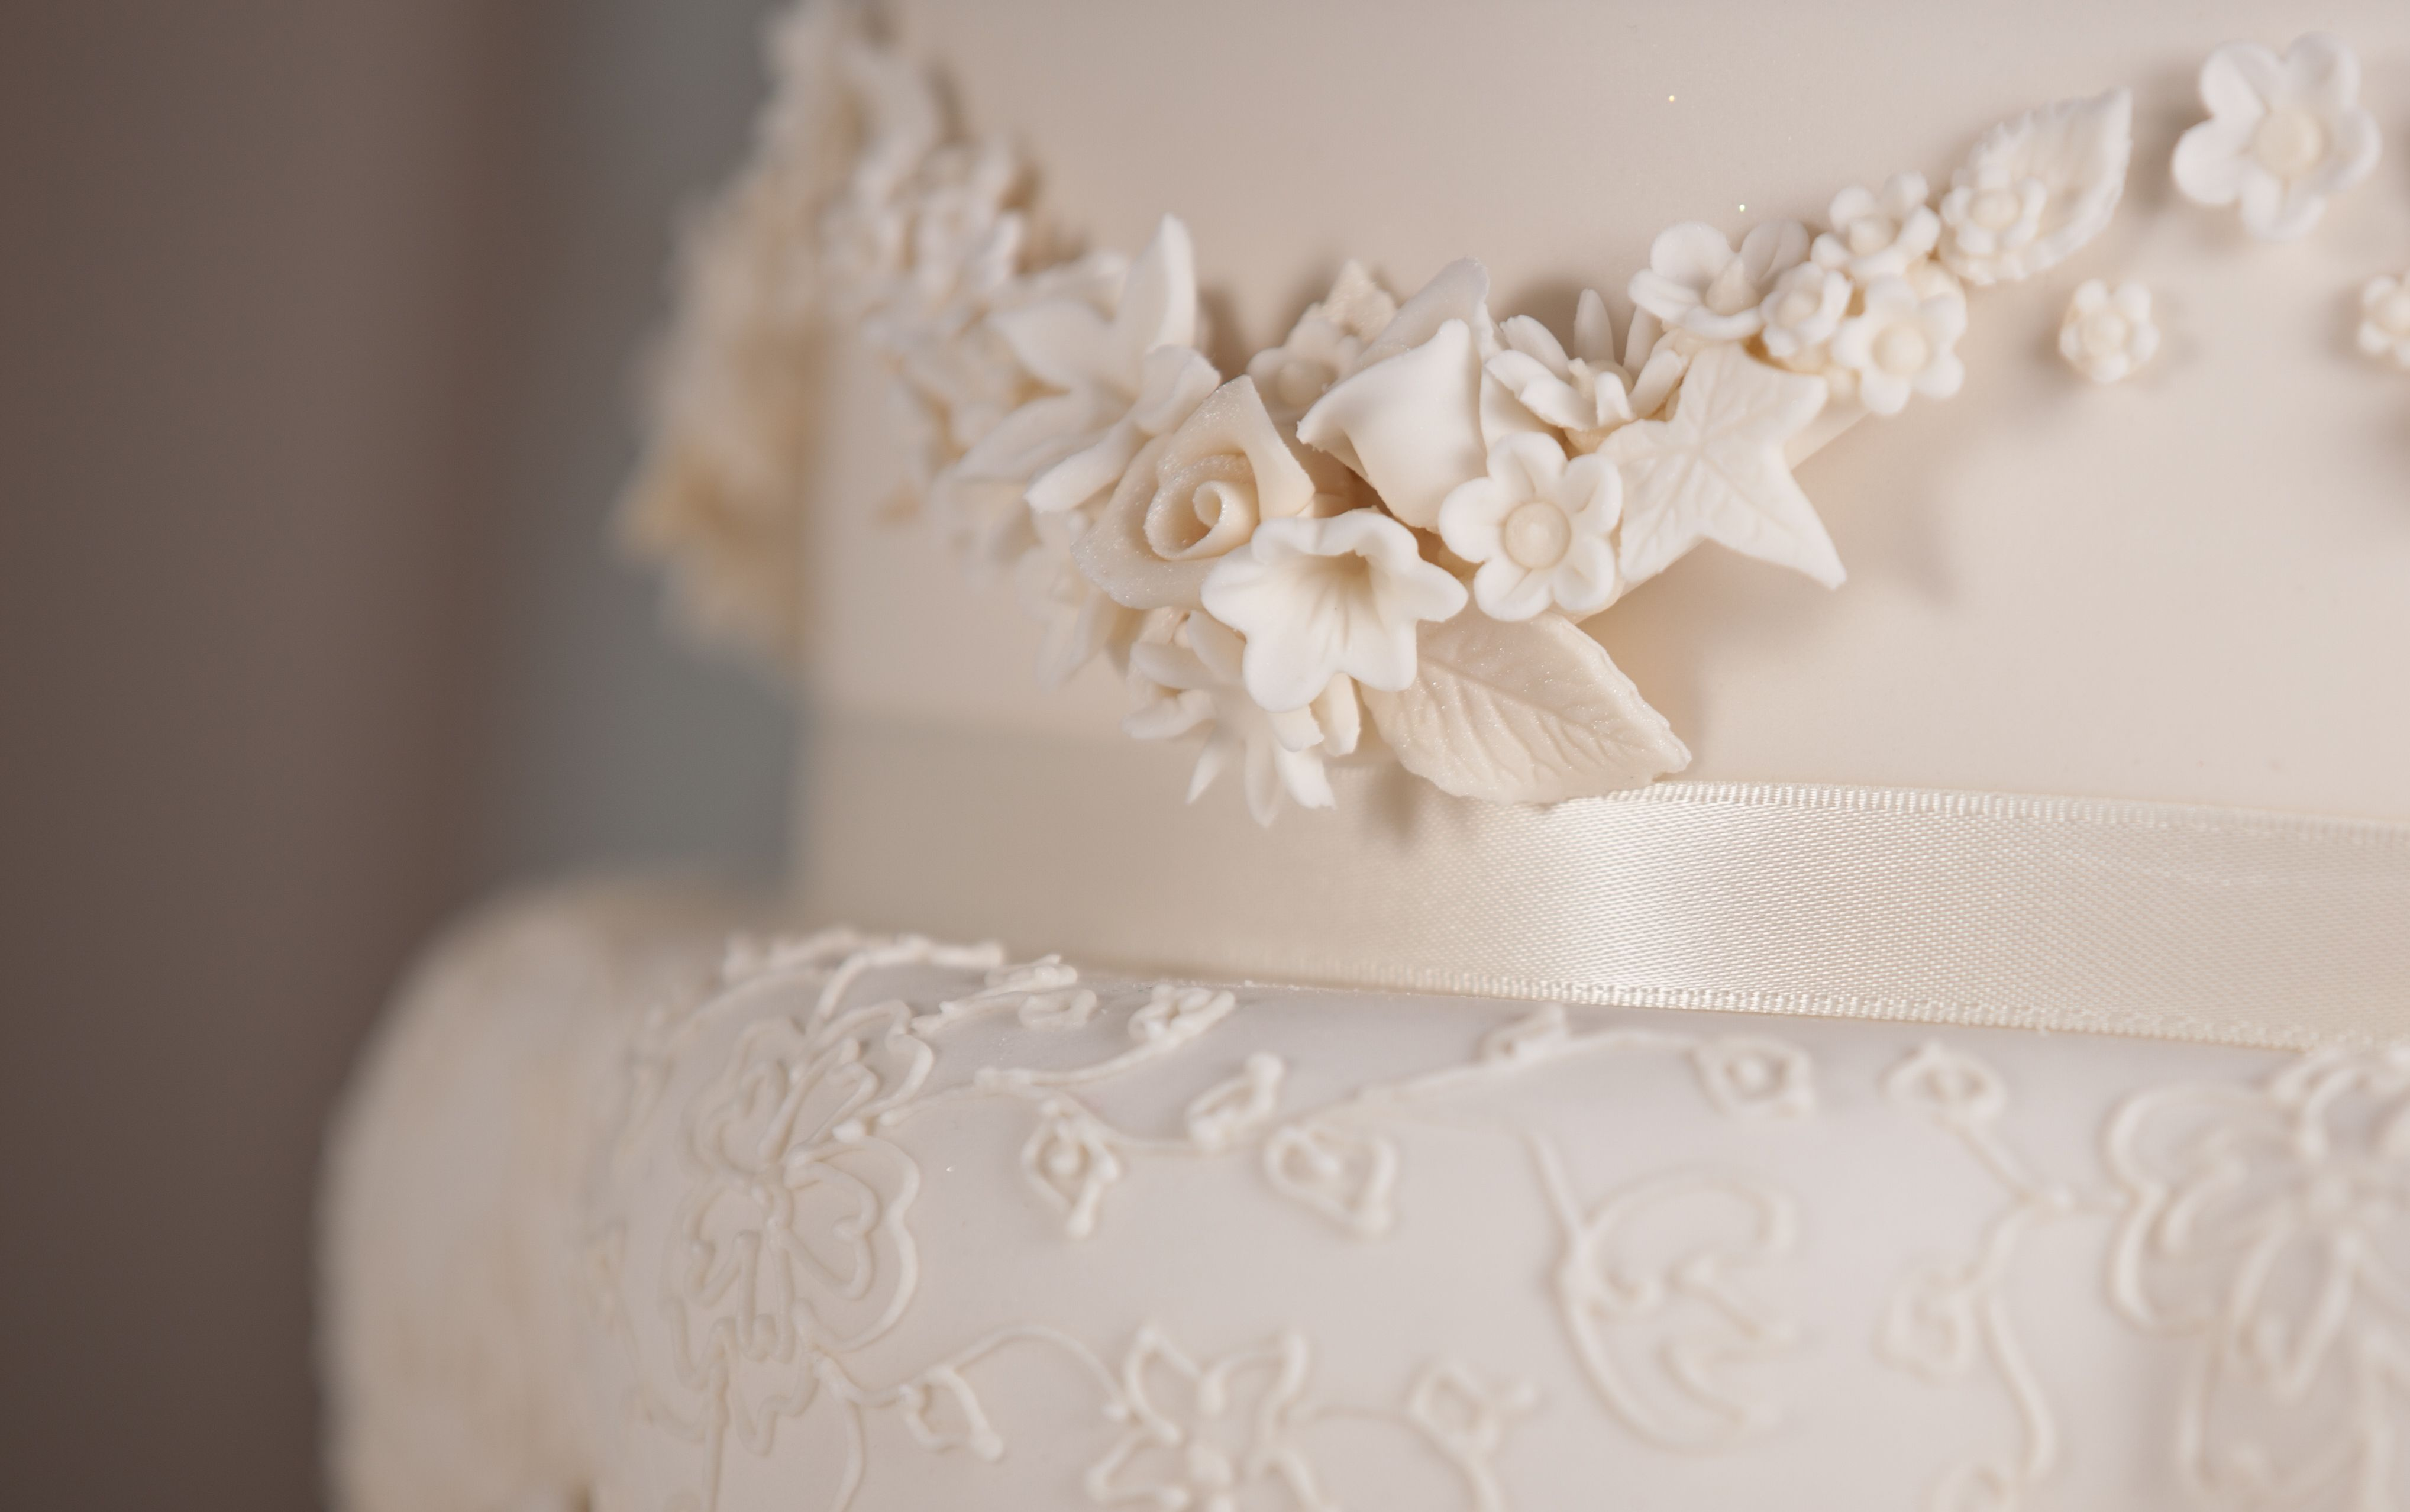 The regal wedding cake onacairnsourproducts